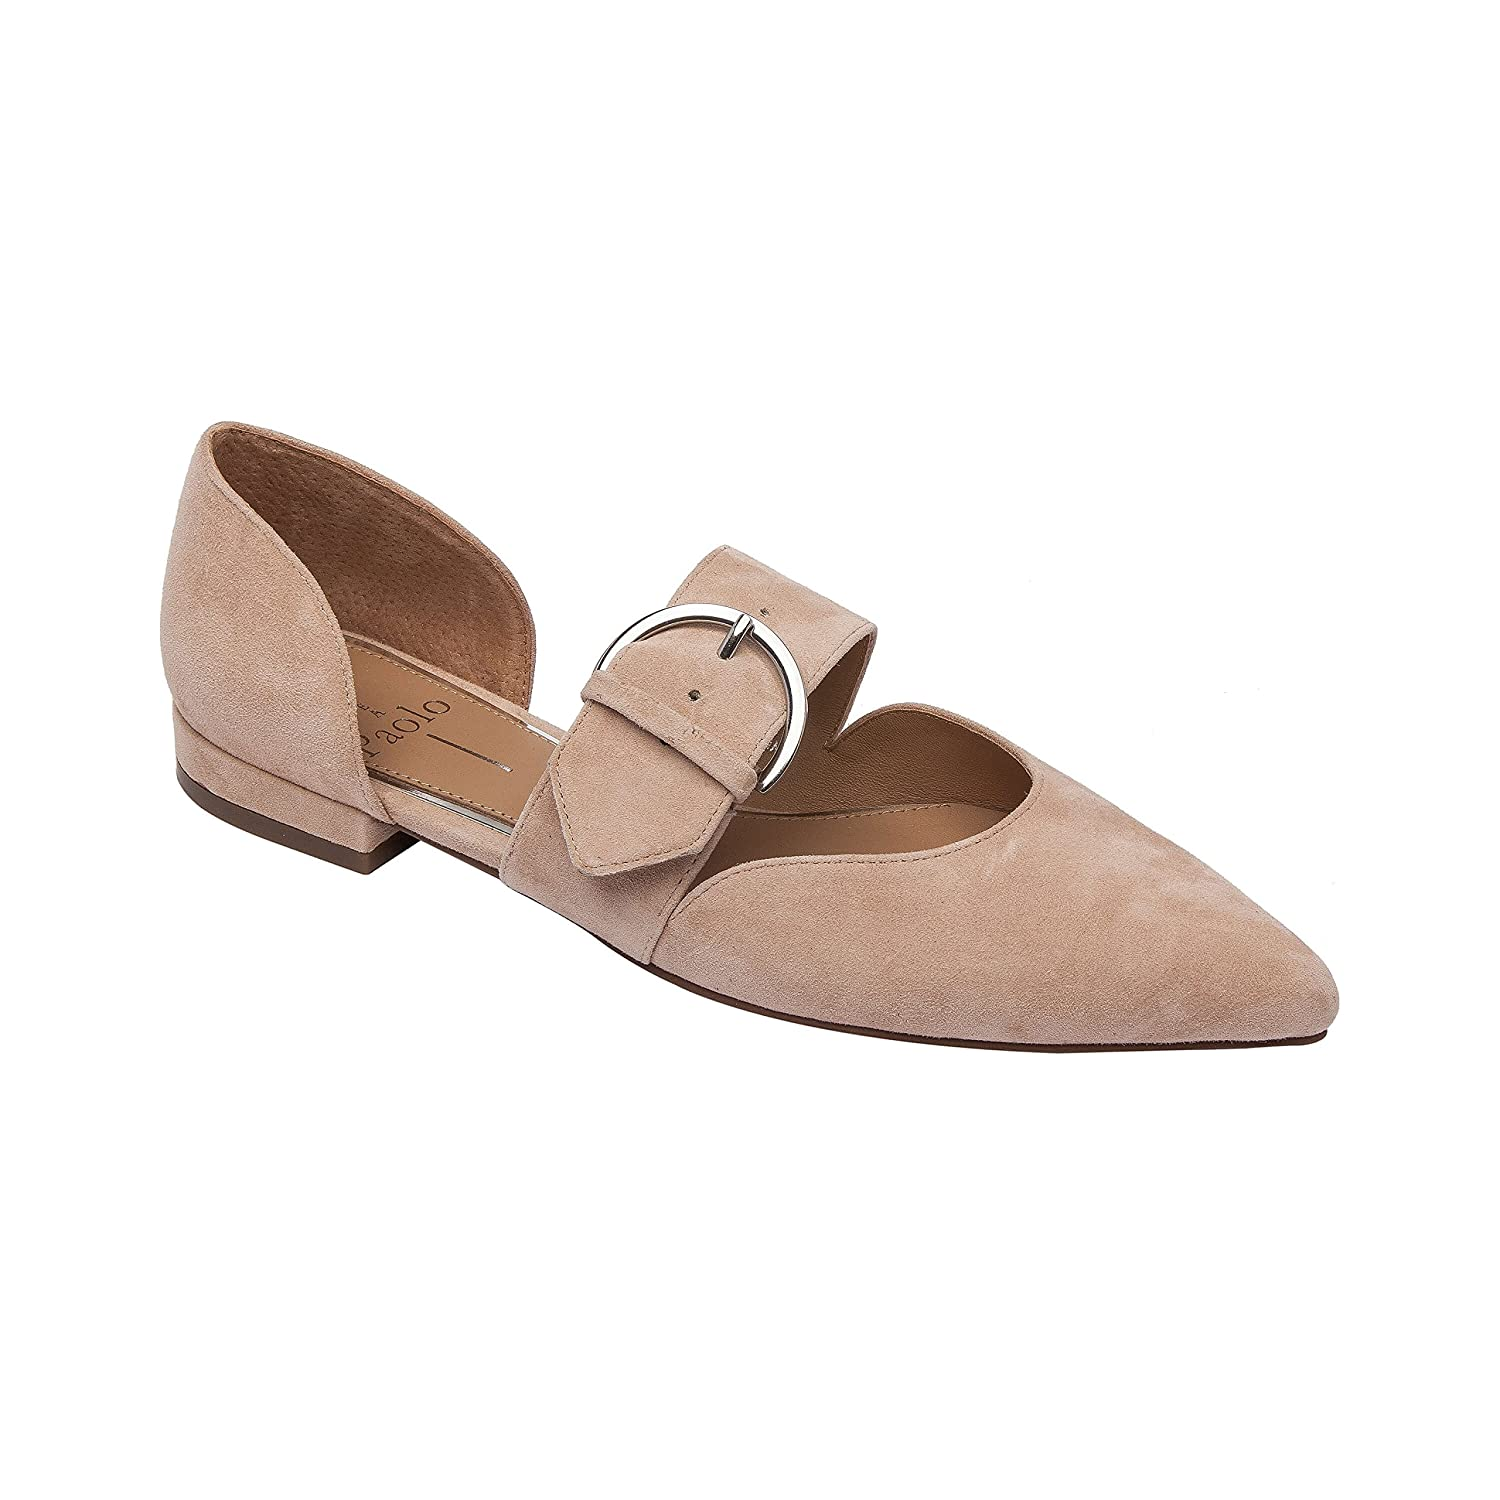 Dean | Women's Two Piece Pointy Toe Comfortable Leather or Suede Ballet Flat B07DM9269N 9.5 M US|Blush Suede